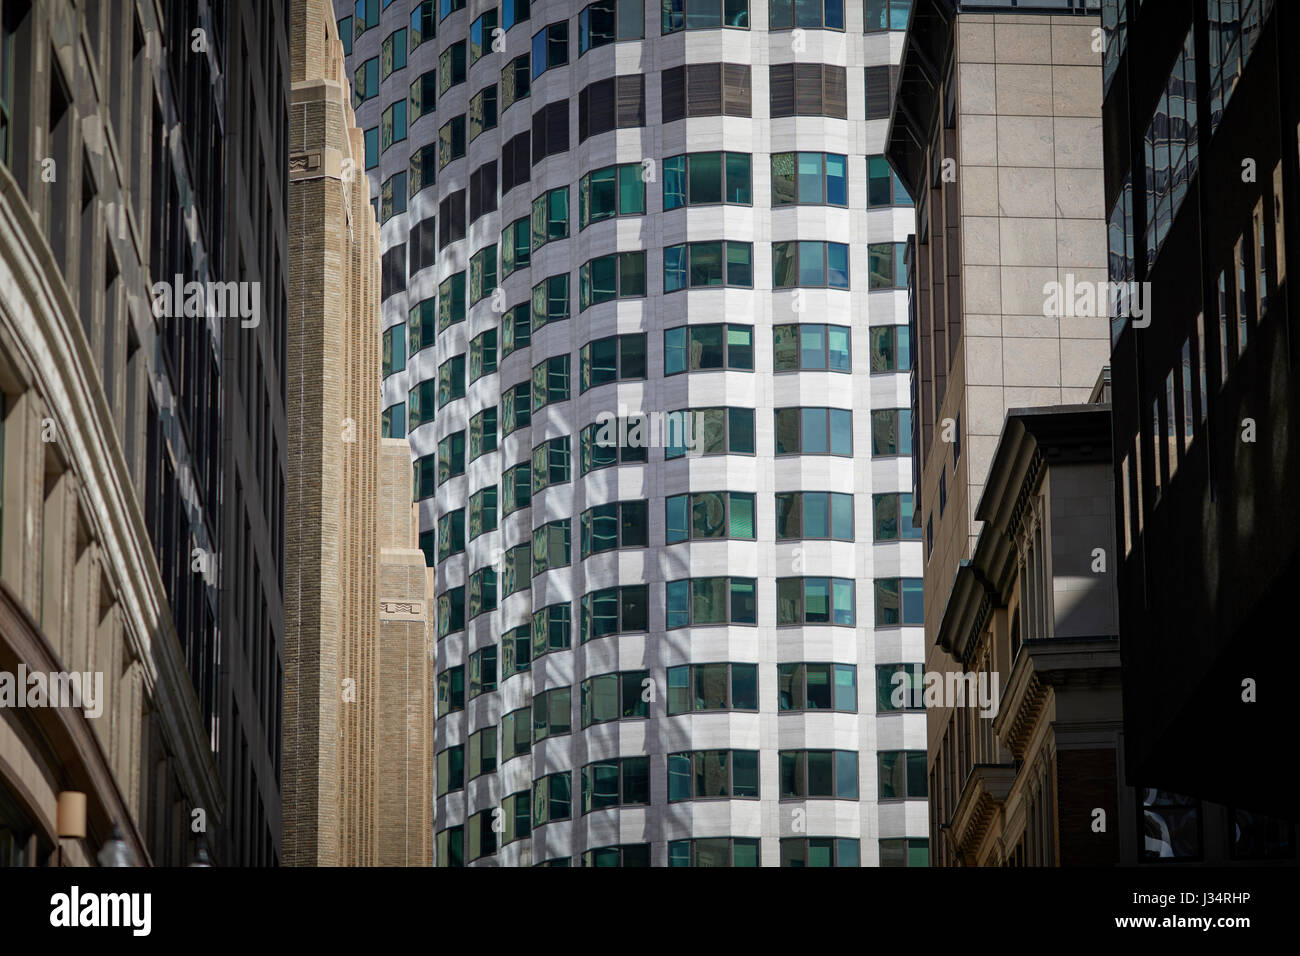 Close up of Keystone Building is a high-rise office building located in downtown Boston Massachusetts, United States, - Stock Image